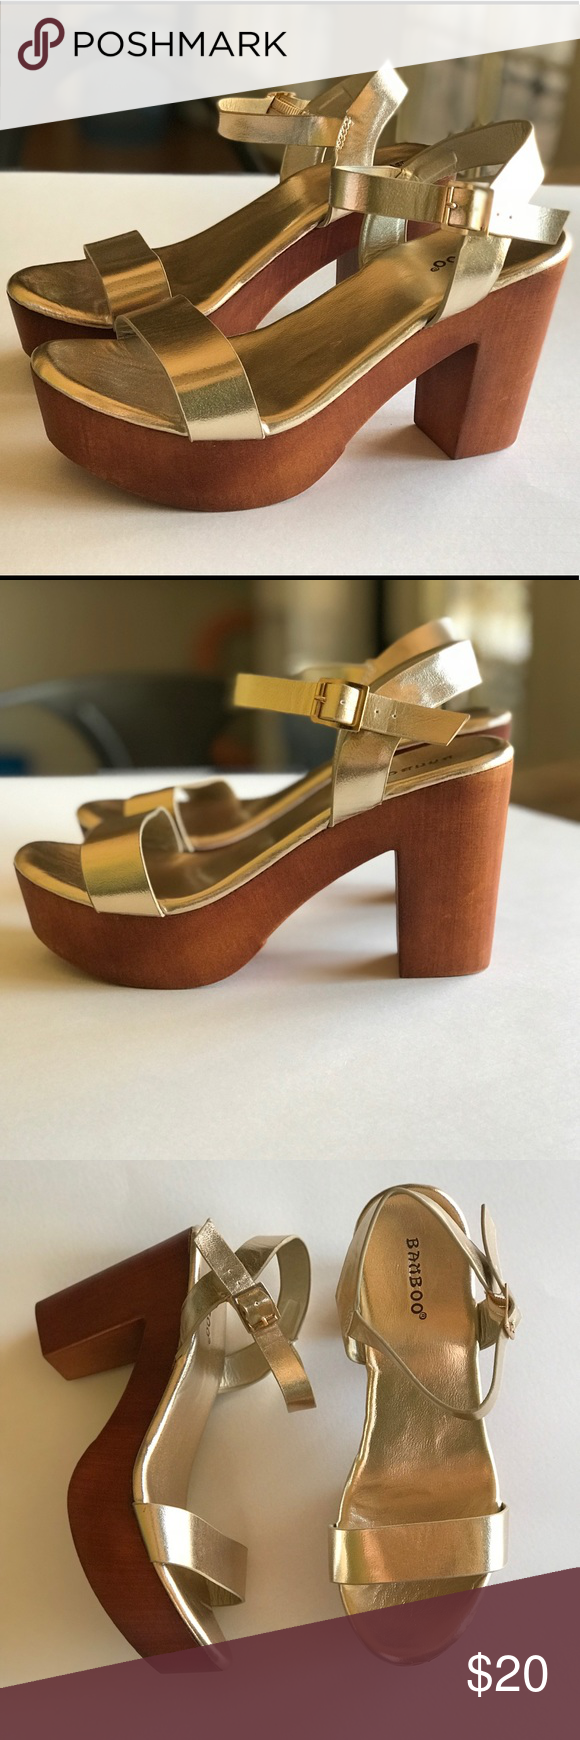 dd22493aa85 Bamboo brand gold platform heels Gold heels with ankle straps. Never worn. BAMBOO  Shoes Heels